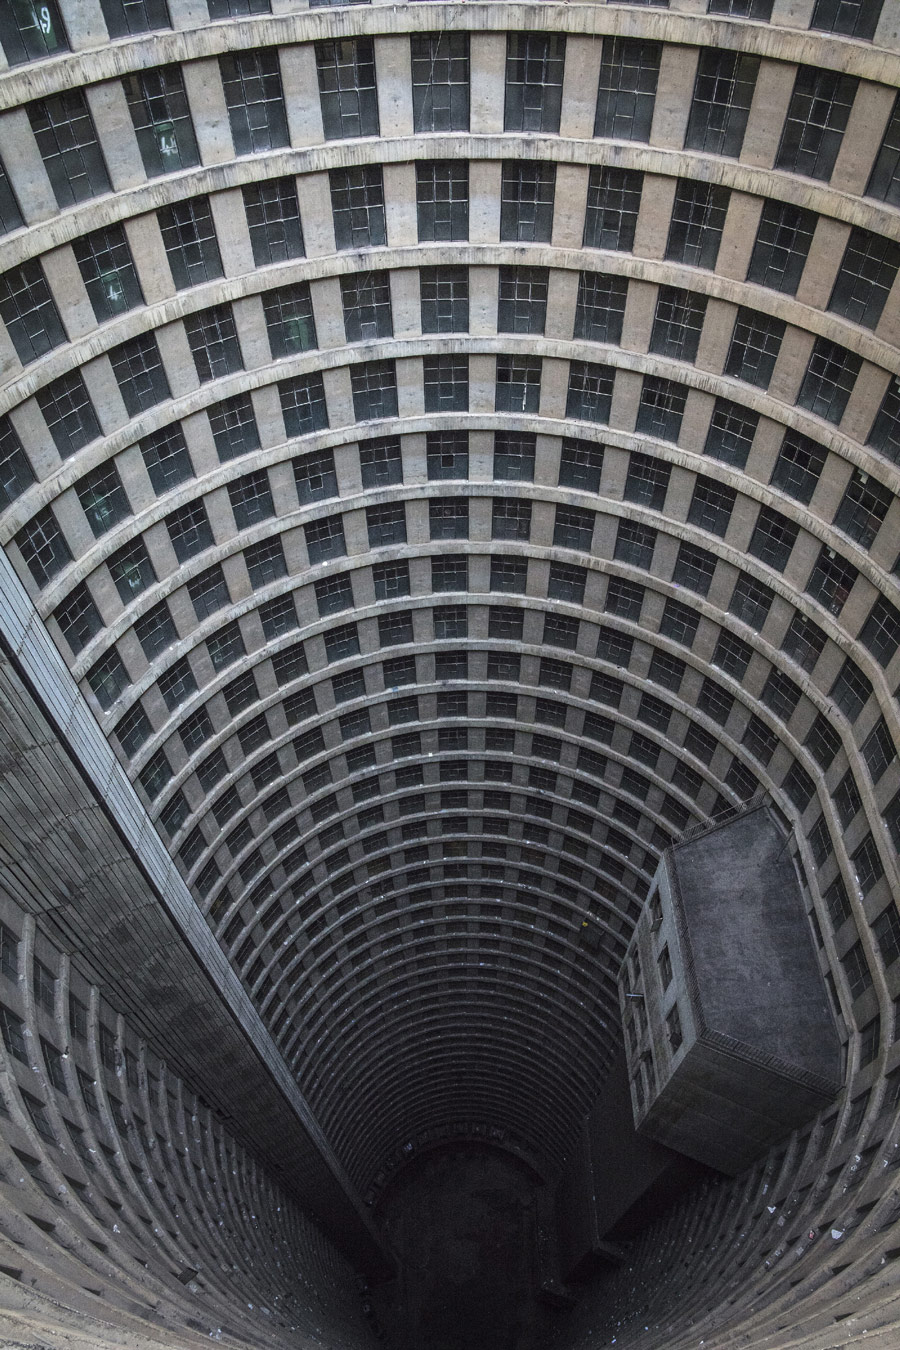 Photographer: Ryan Koopmans, Project: Ponte City Apartments in Johannesburg, South Africa by architect Manfred Hermer, Architectural Photography Awards